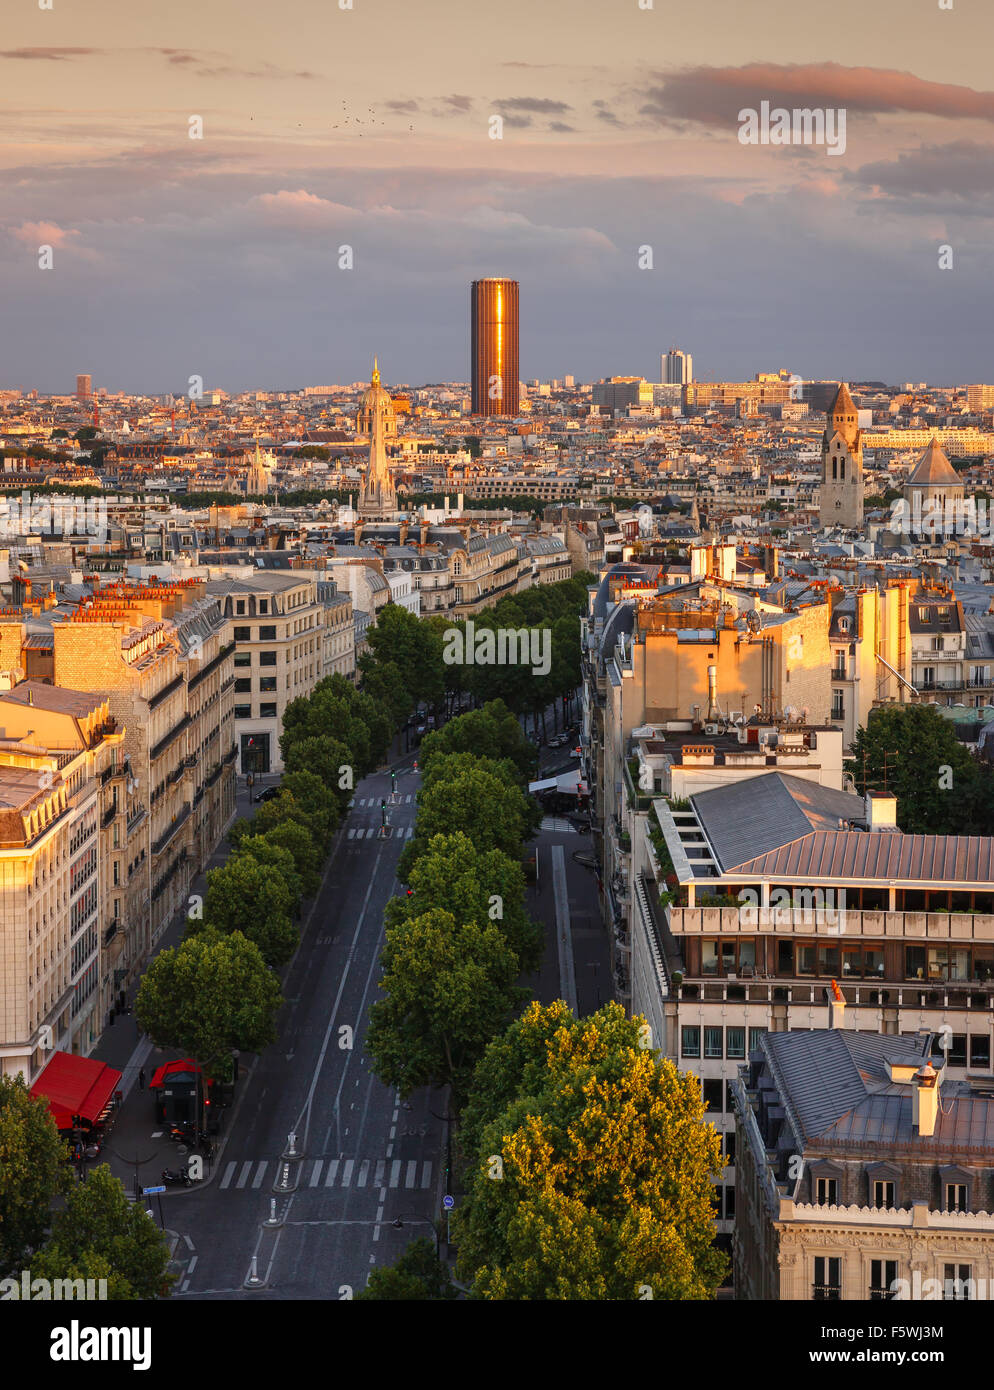 Sunset light on Montparnasse Tower and Avenue Marceau rooftops in the 16th arrondissement, Paris, France - Stock Image